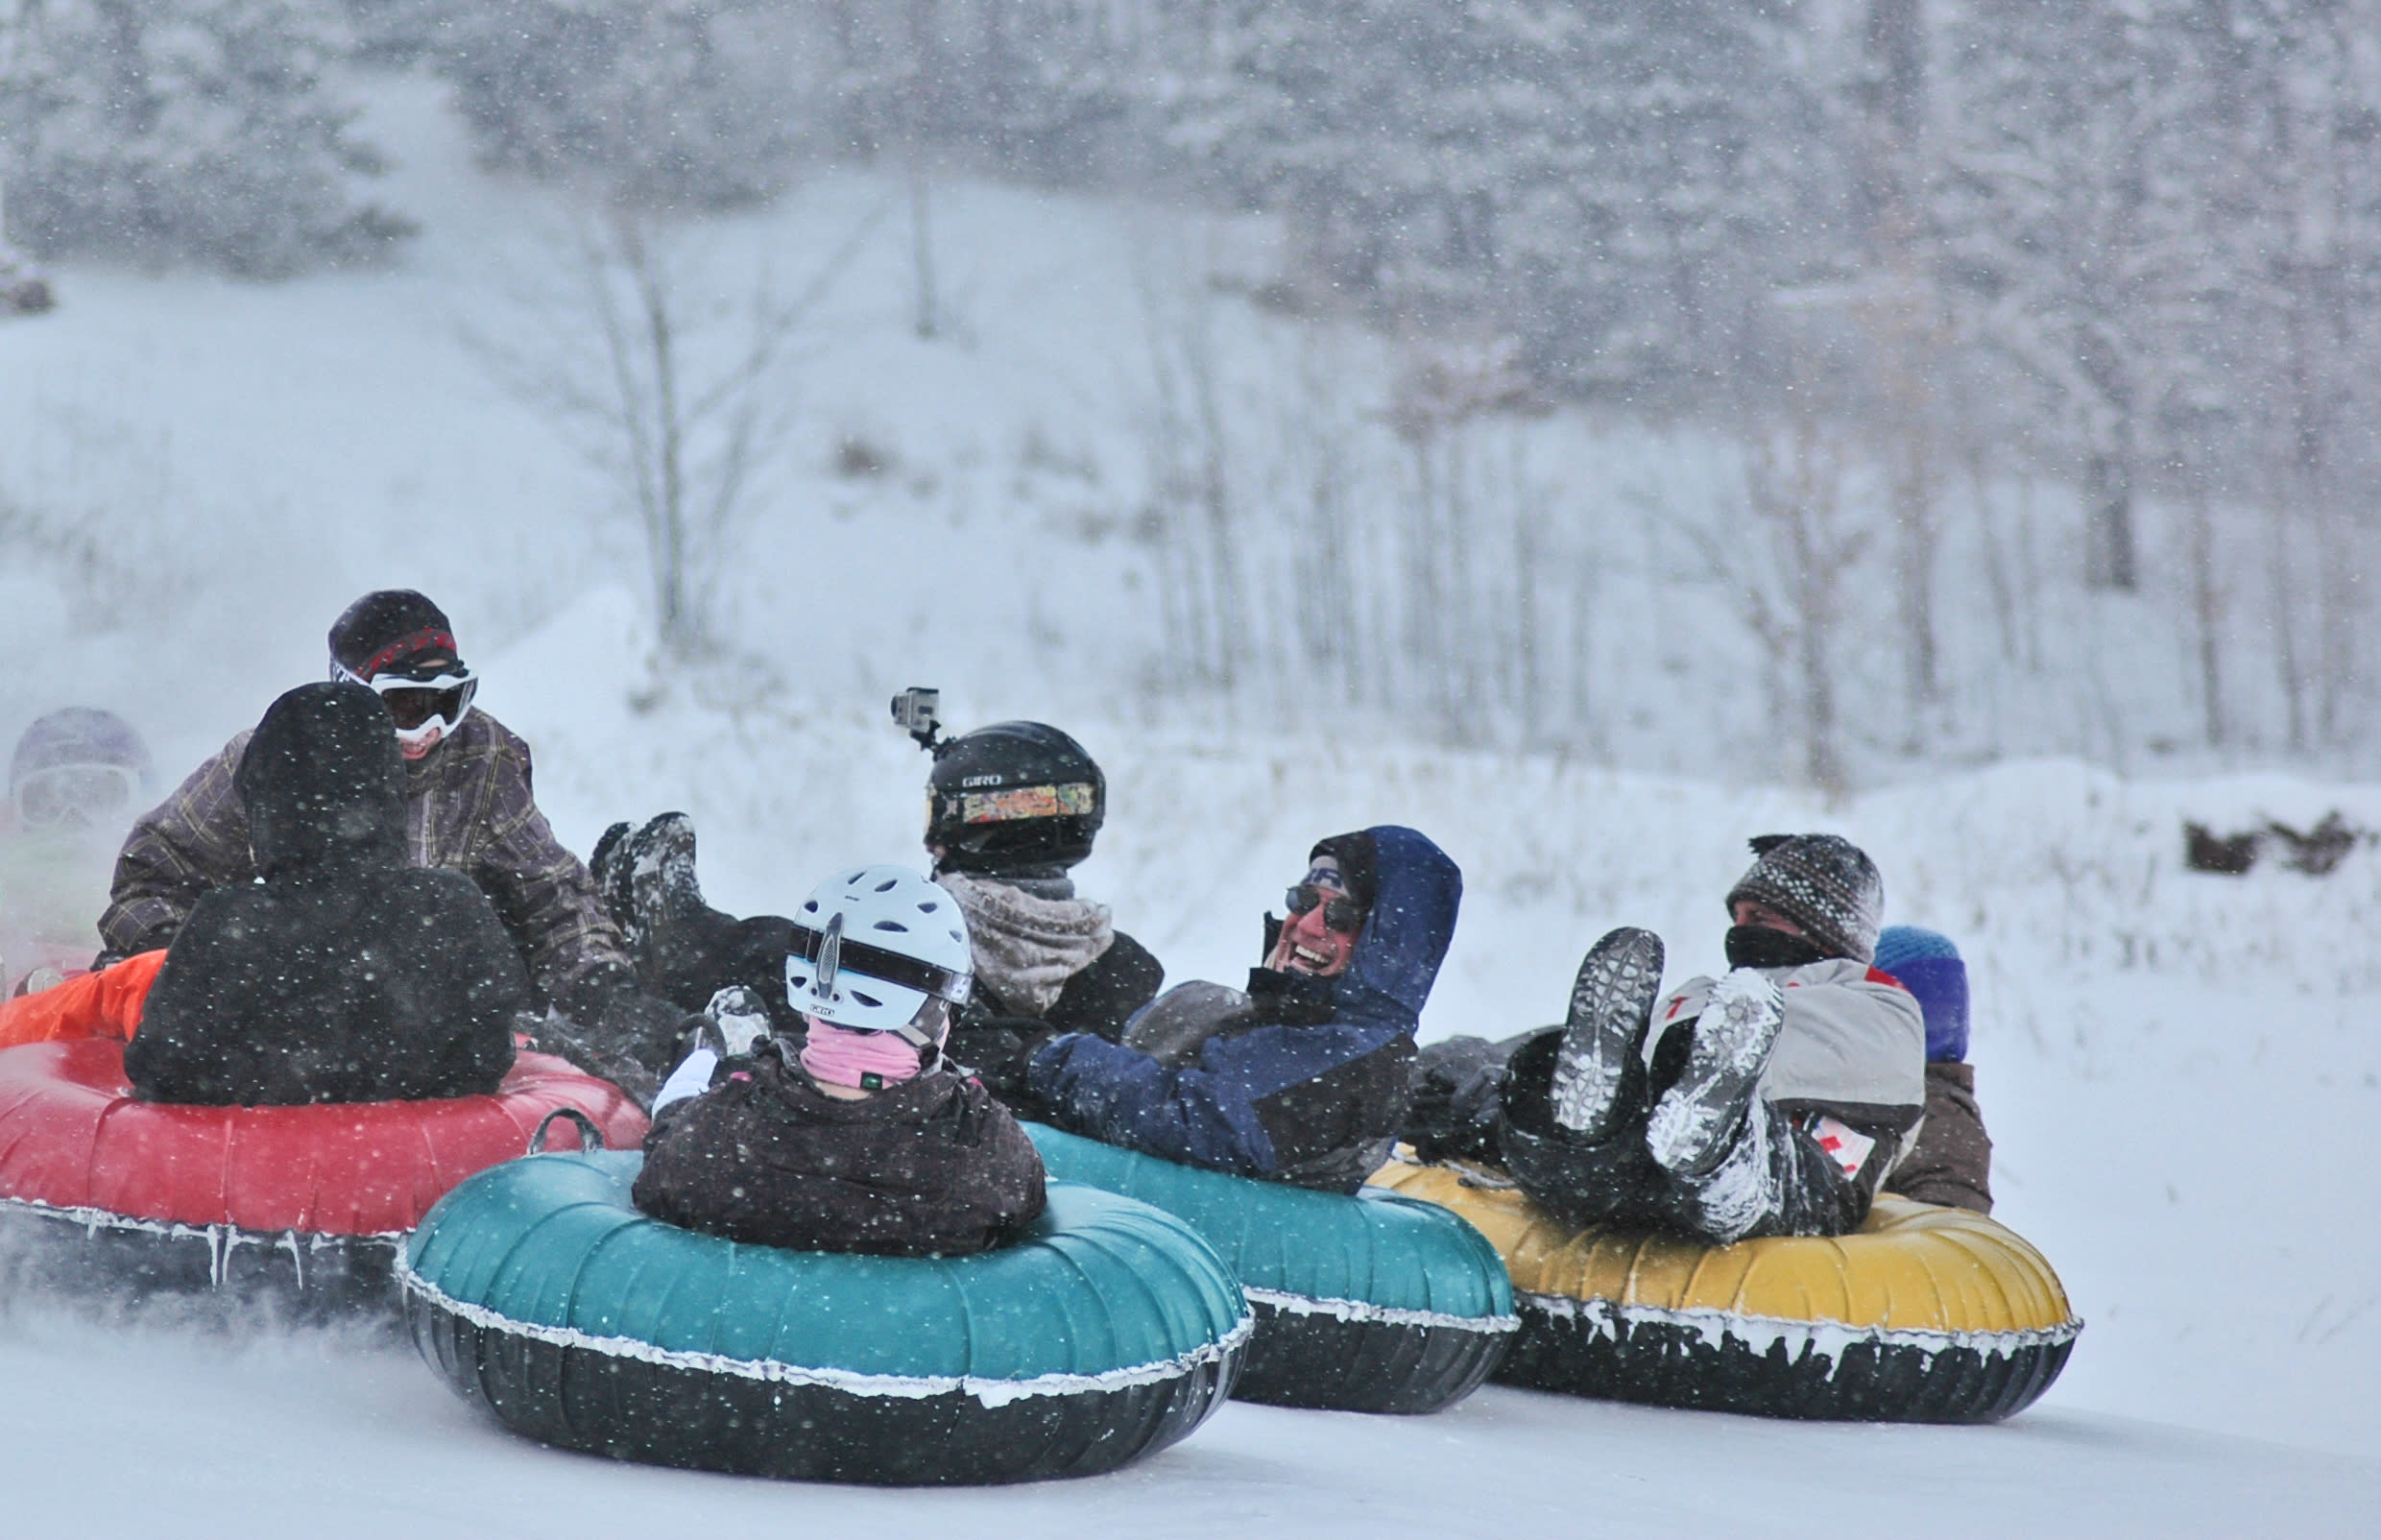 Tubing down in a group at TimberLee Hills.